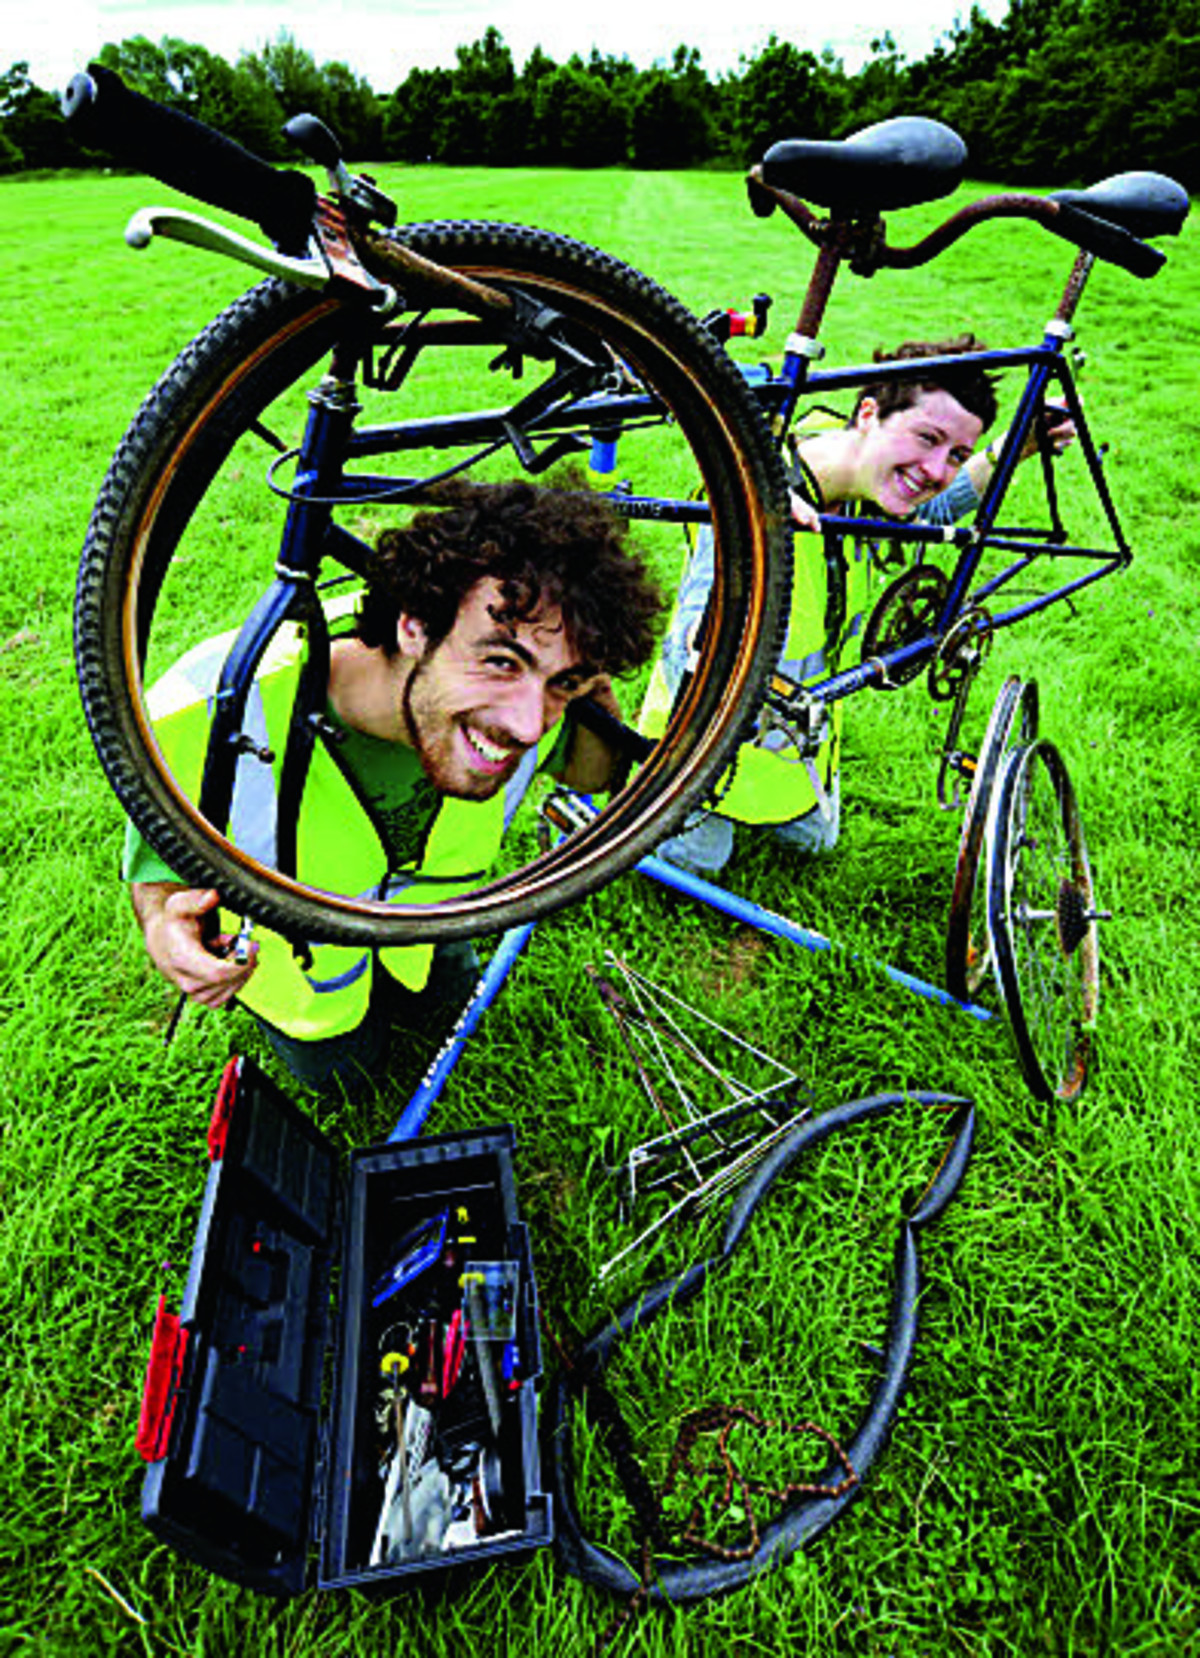 Nicholas O'Brien and Nina Brown get ready for the Tandem Festival Picture: OX67933 David Fleming